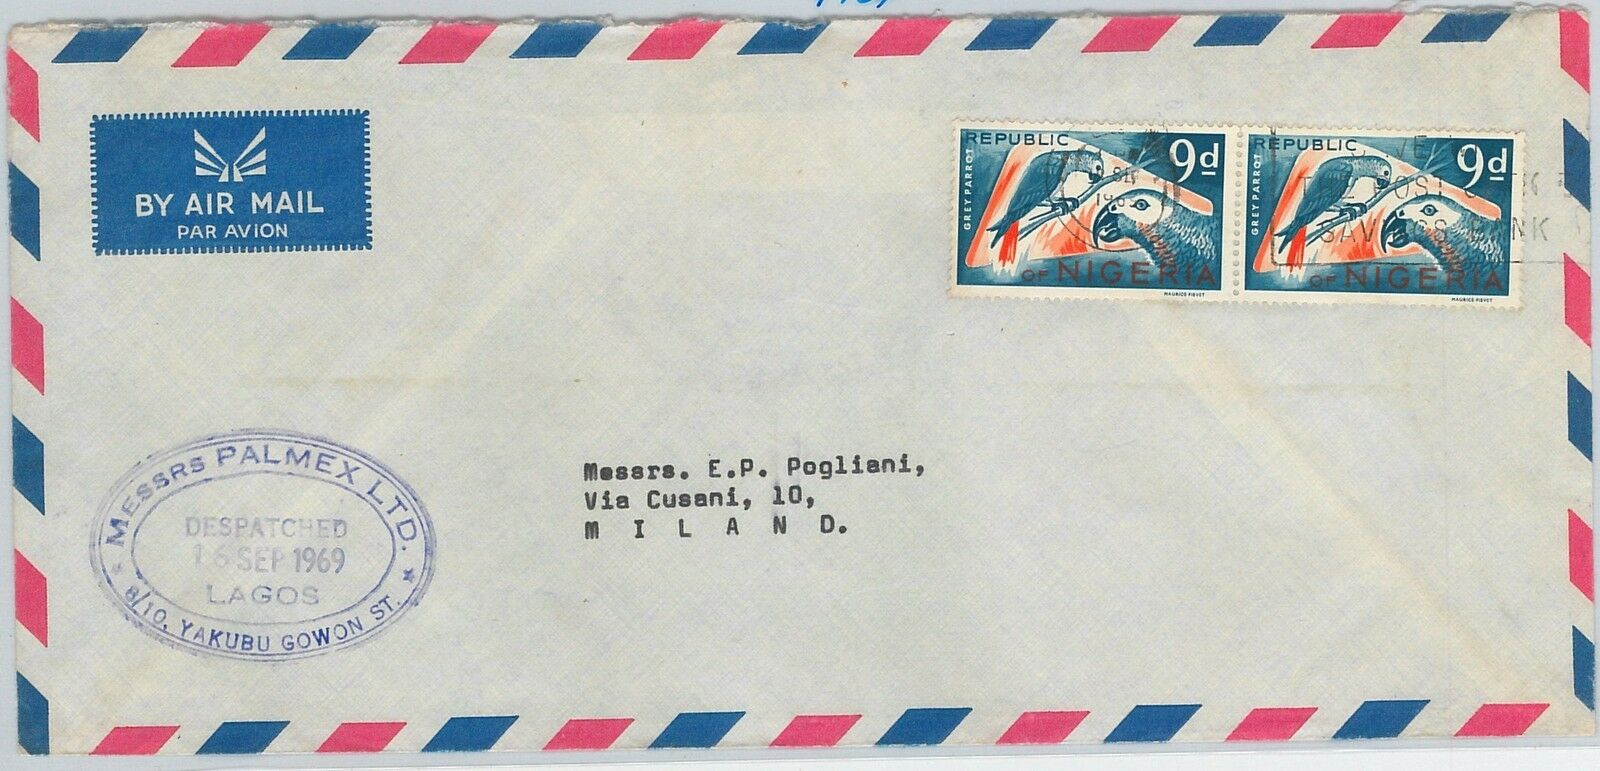 61397 - NIGERIA - POSTAL HISTORY - AIRMAIL COVER  to ITALY - 1965 - BIRDS